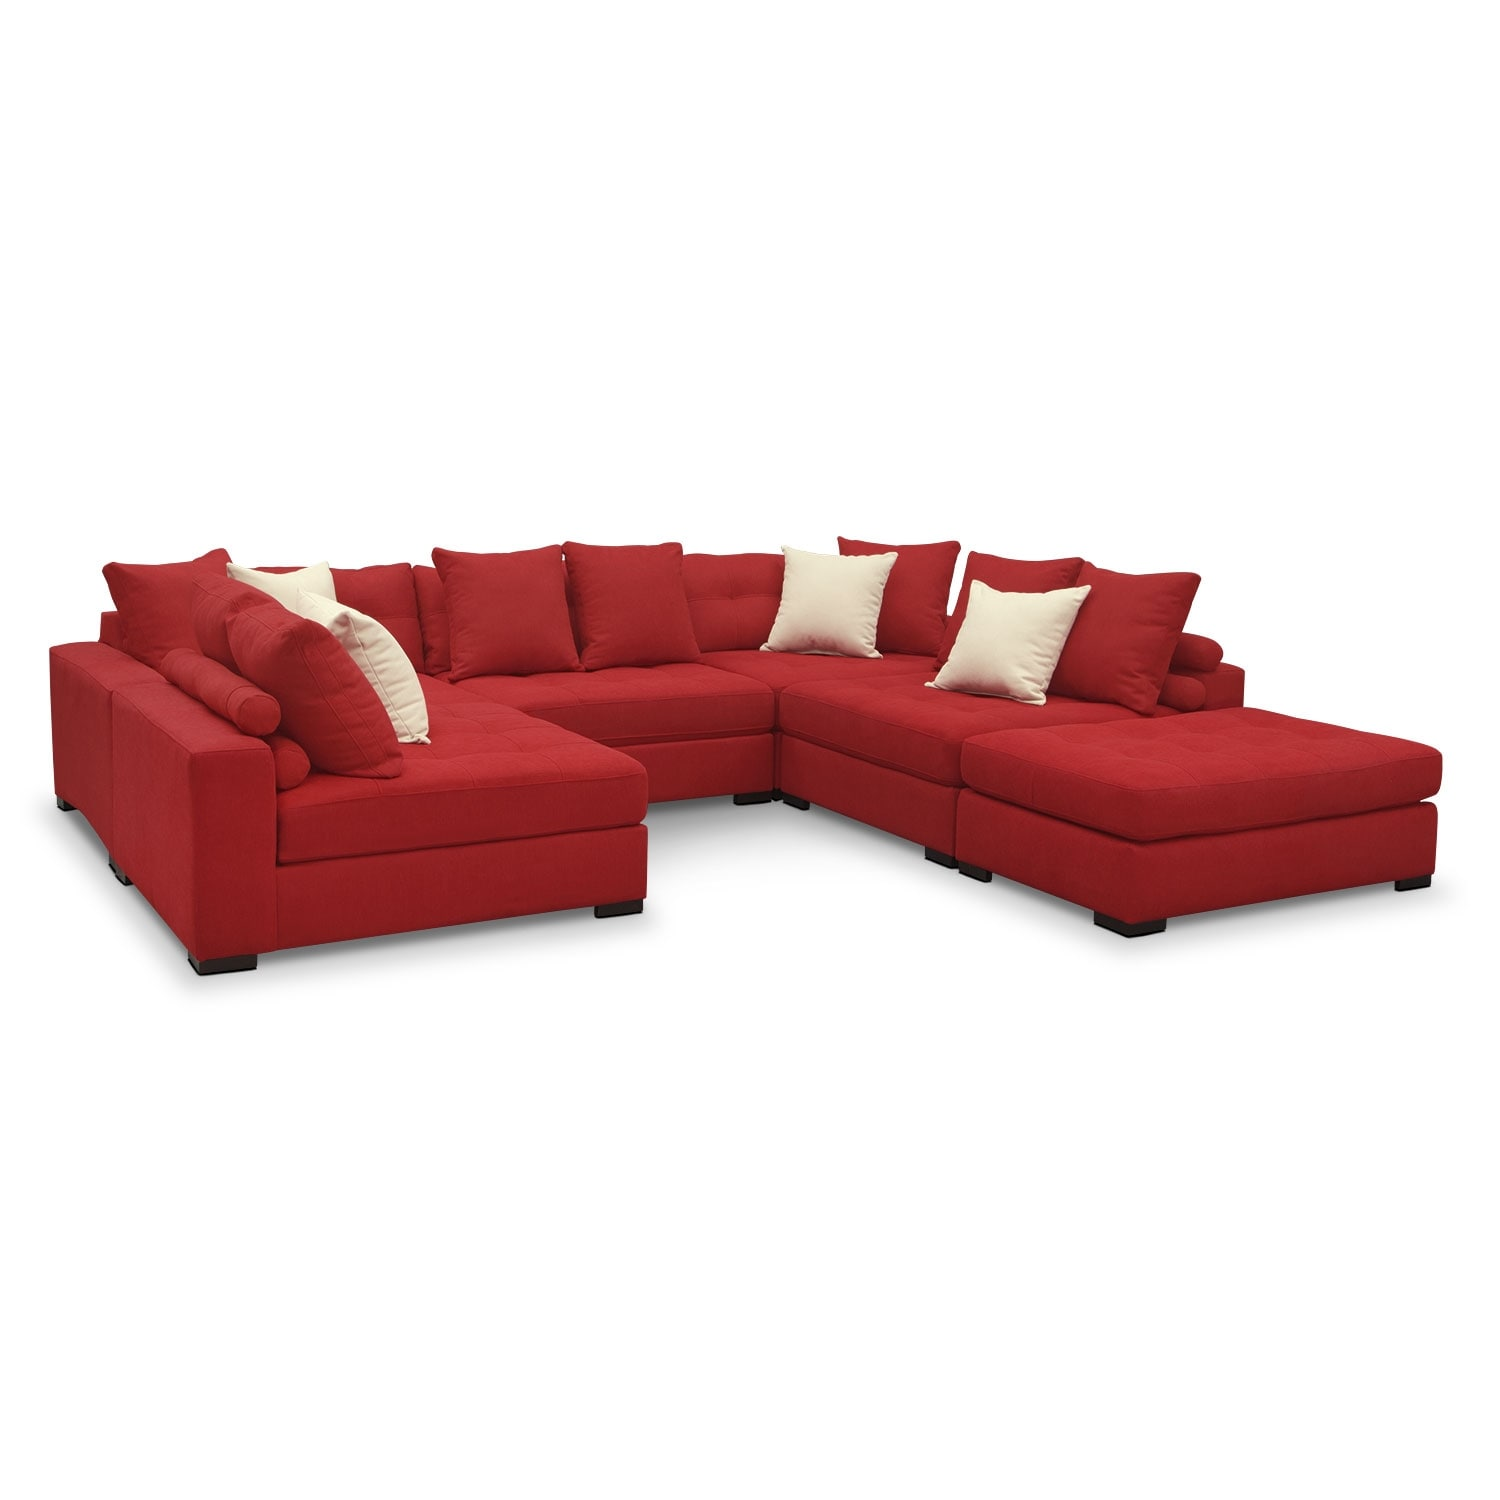 Sectional Sofas Living Room Seating American Signature